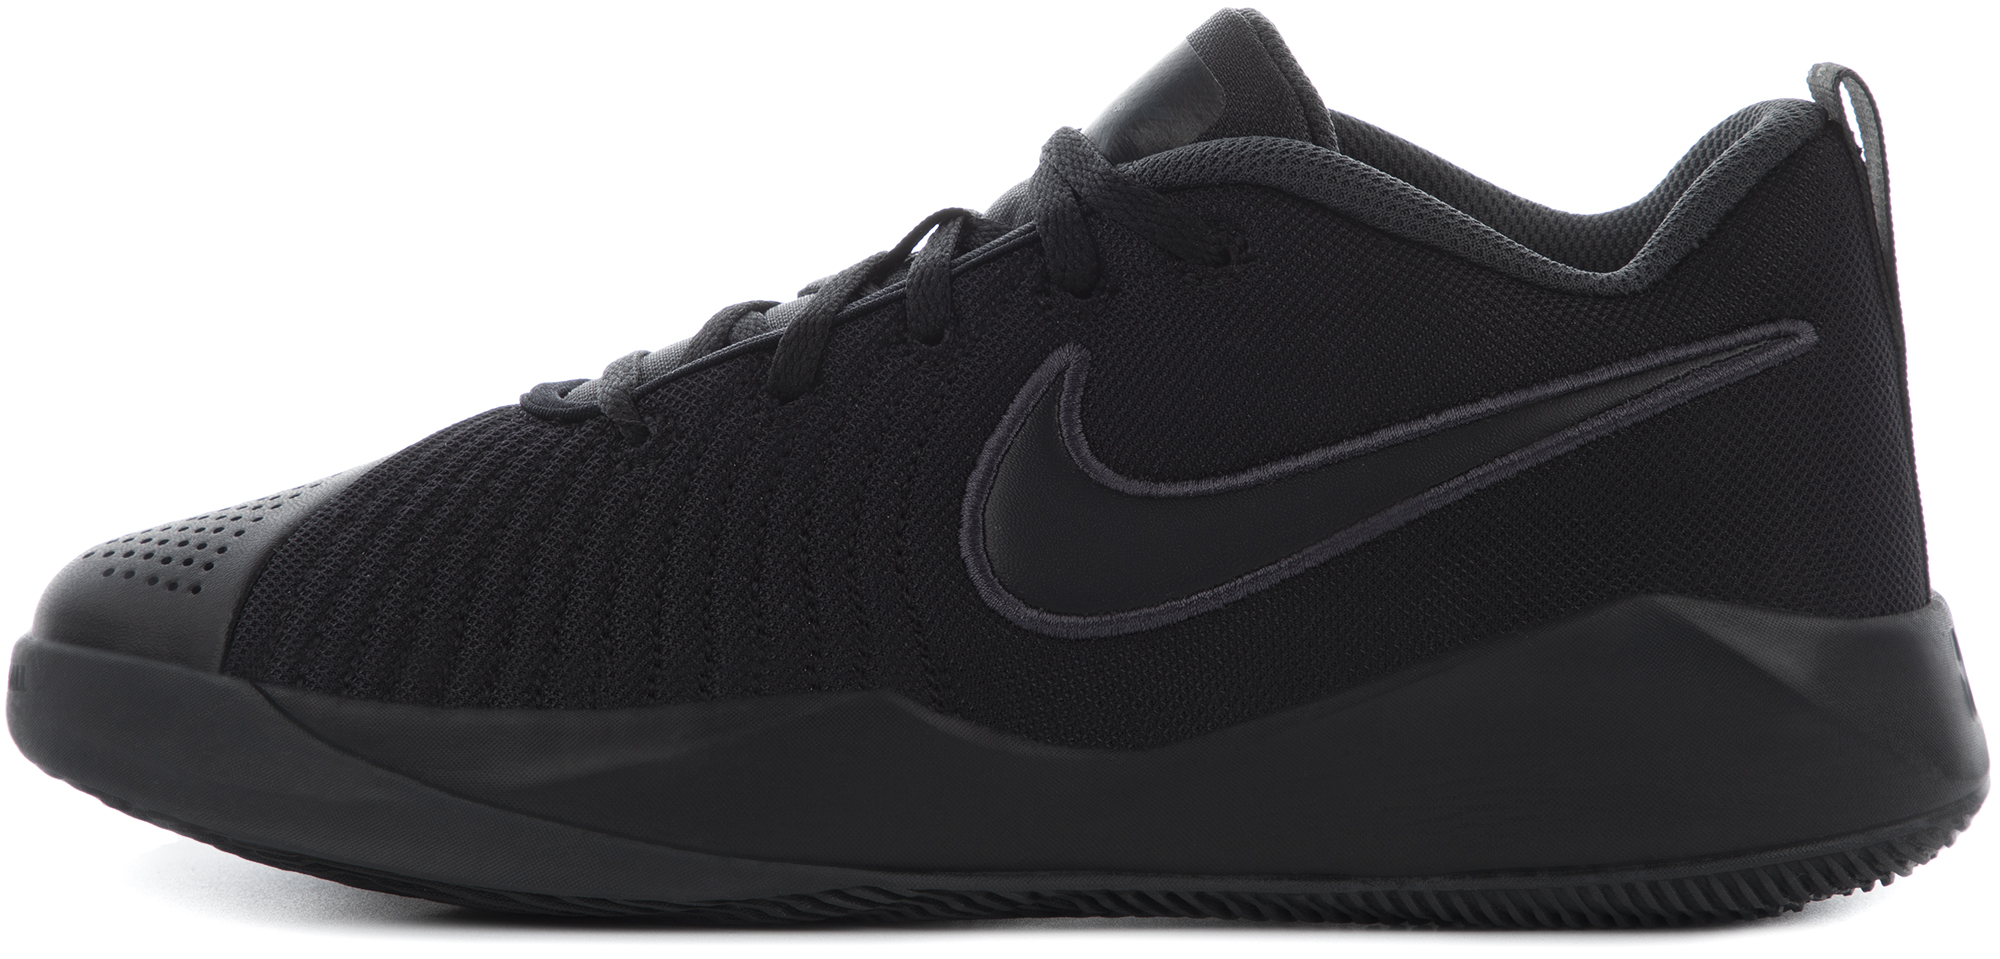 Nike Кроссовки для мальчиков Nike Team Hustle Quick 2 (Gs), размер 39 nike nike revolution 3 se gs